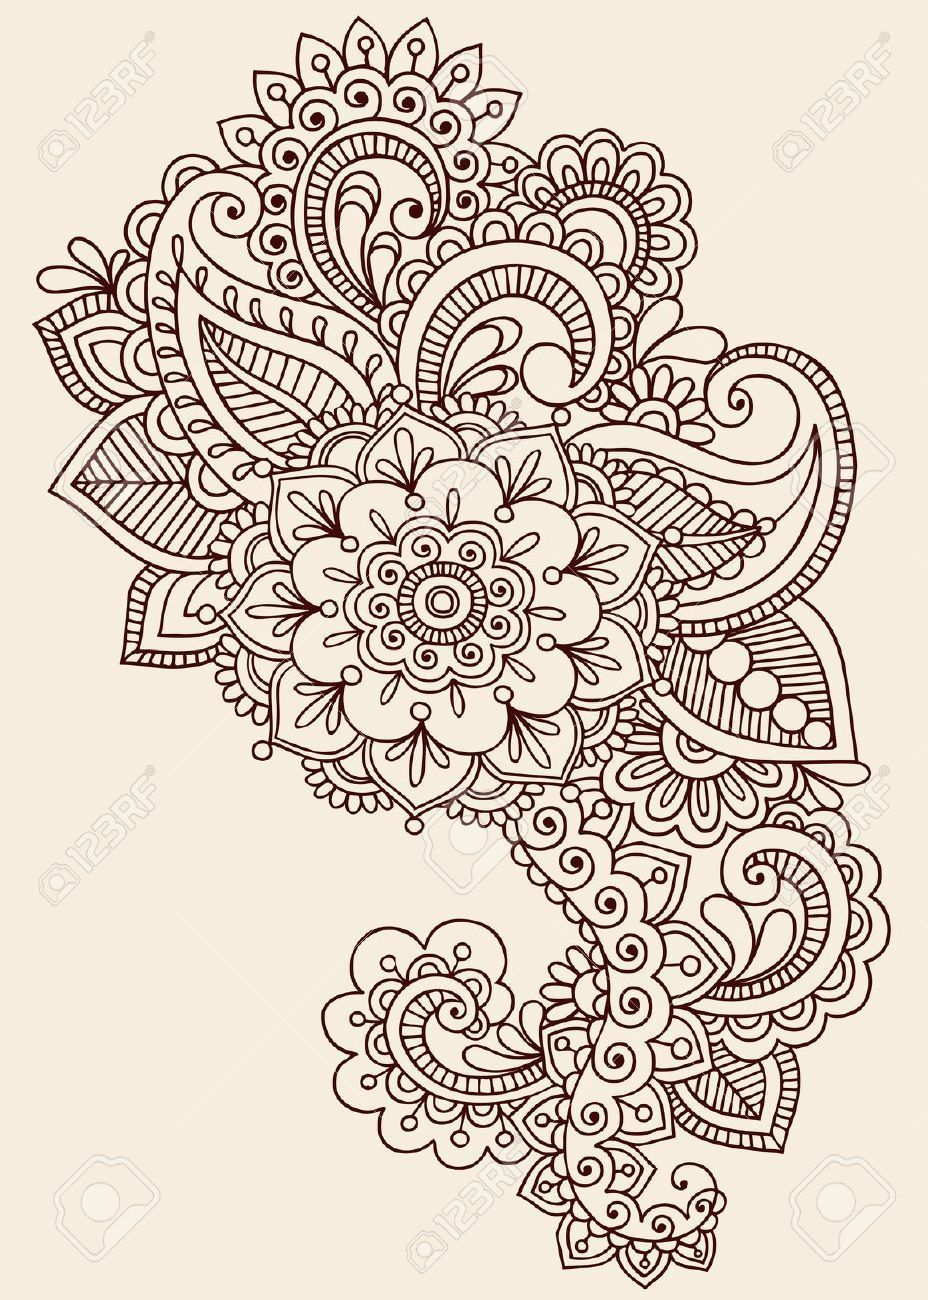 Paisley muster clipart 1 » Clipart Portal clipart freeuse download